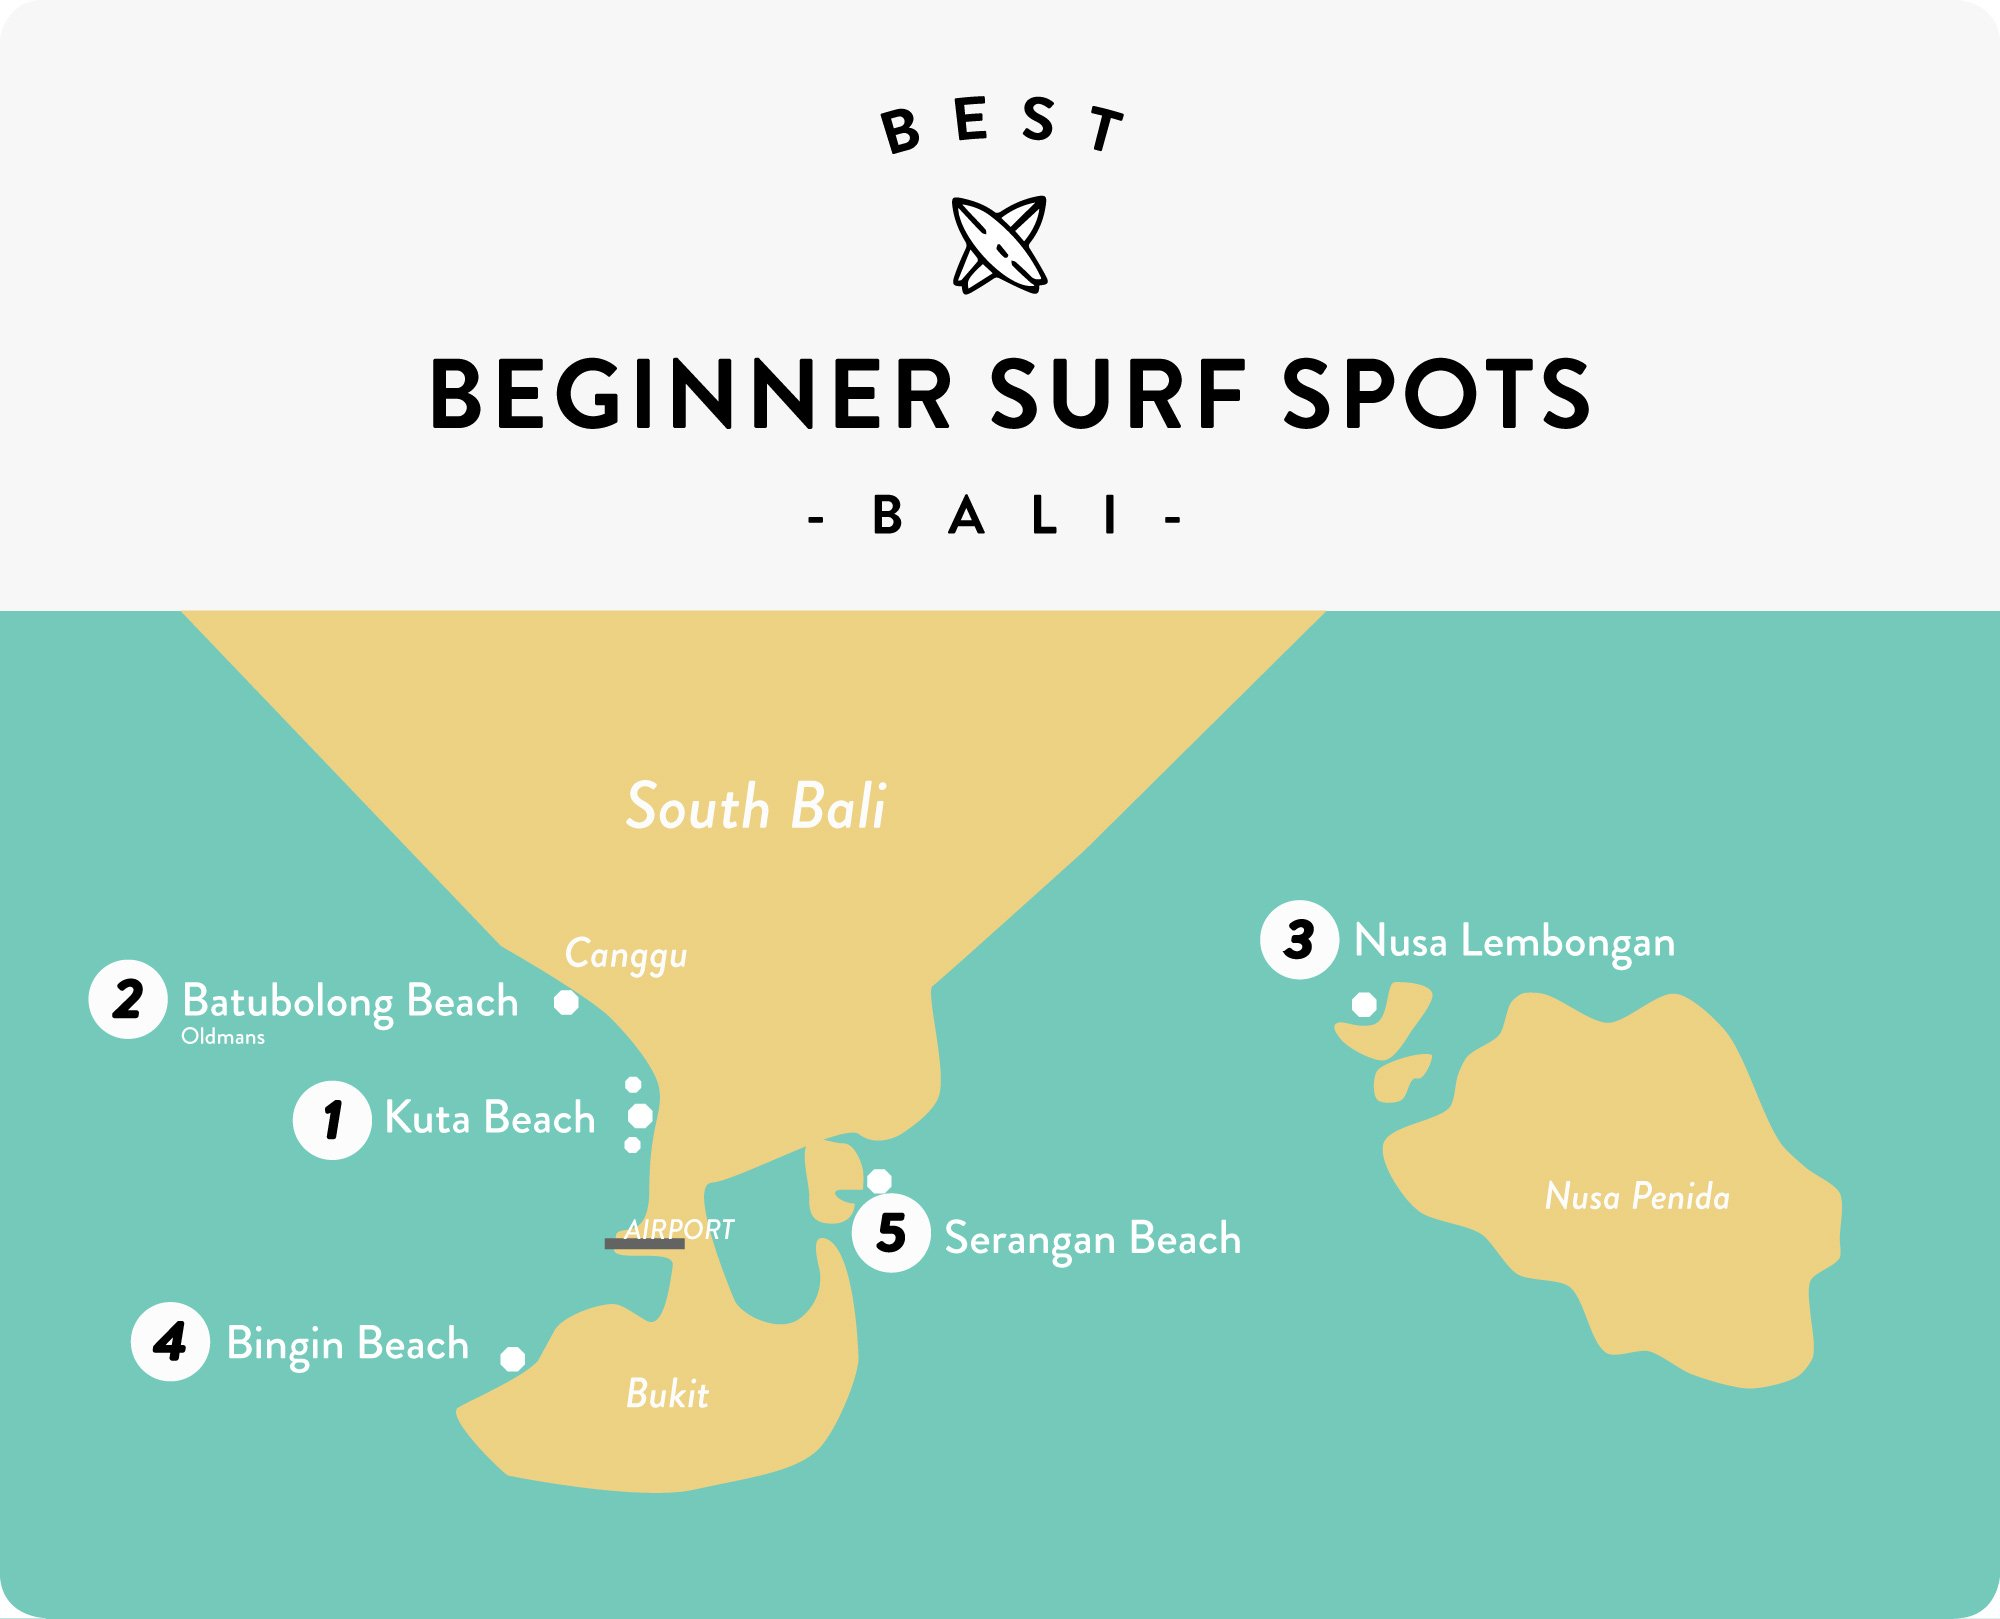 Bali Karte Canggu.Top 5 Best Beaches For Beginners To Learn To Surf In Bali